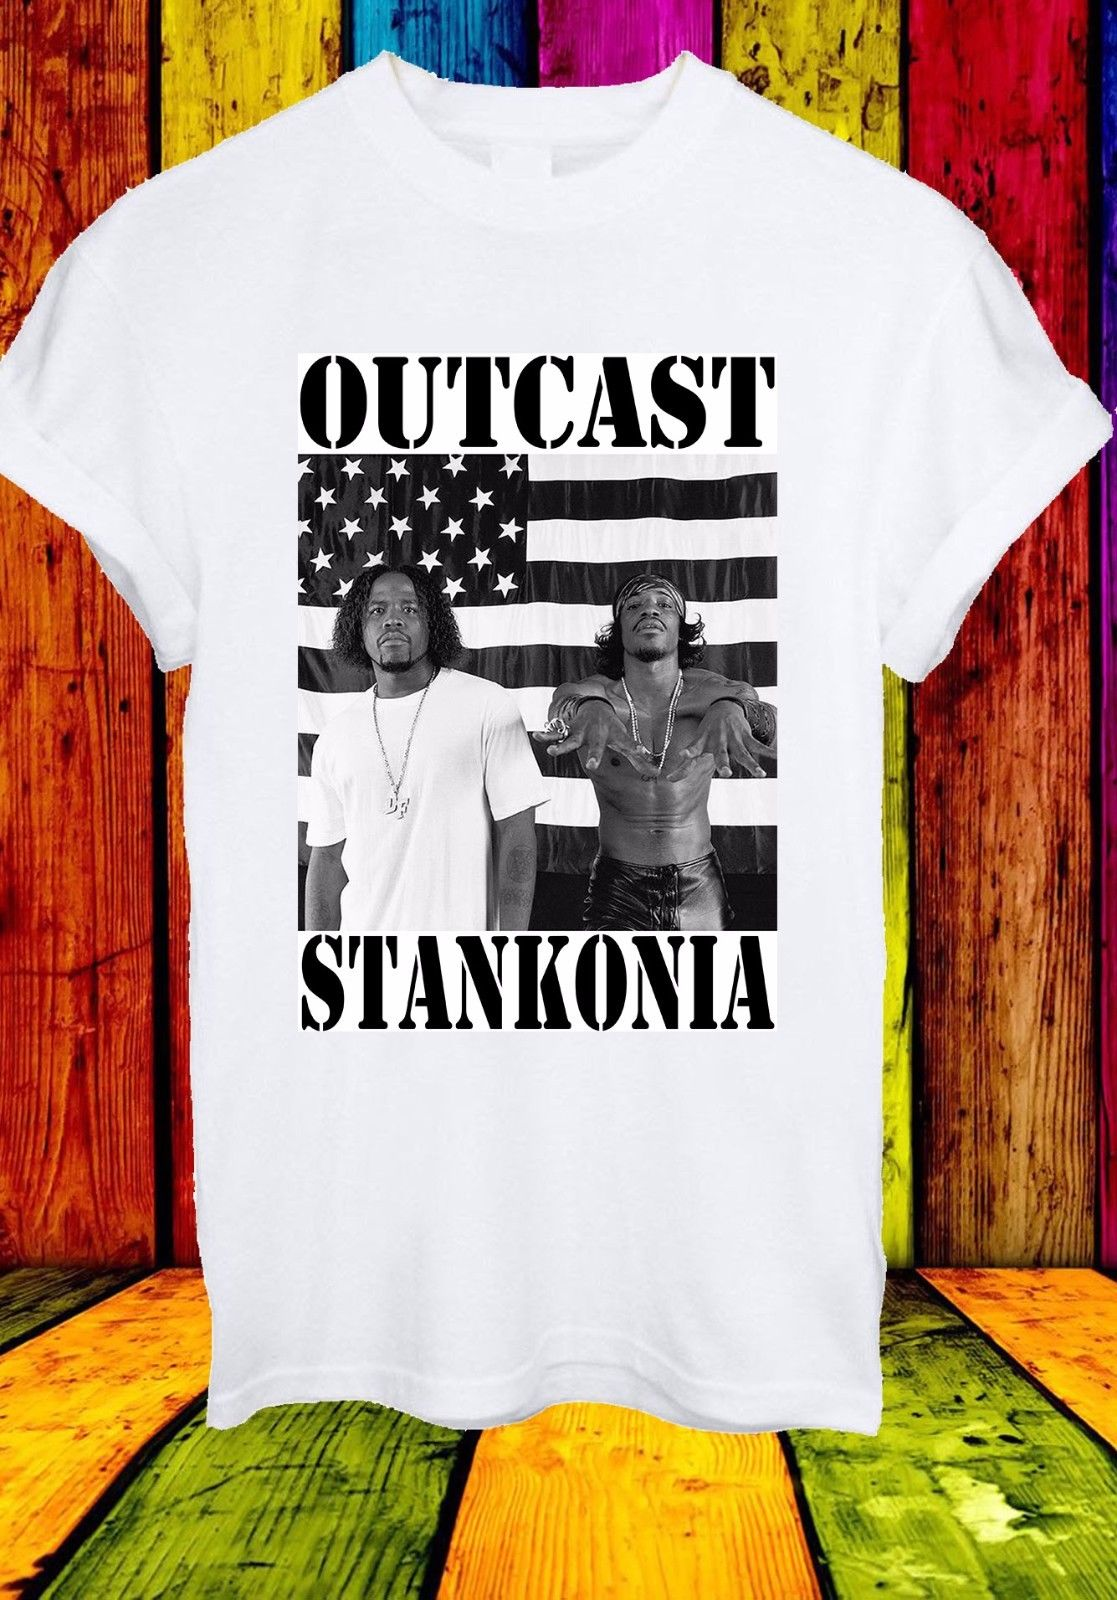 Outkast Stankonia Album Cover American Hip Hop Rap Men Women Unisex T-shirt 733 Cotton Low Price Top Tee For Teen Girls image